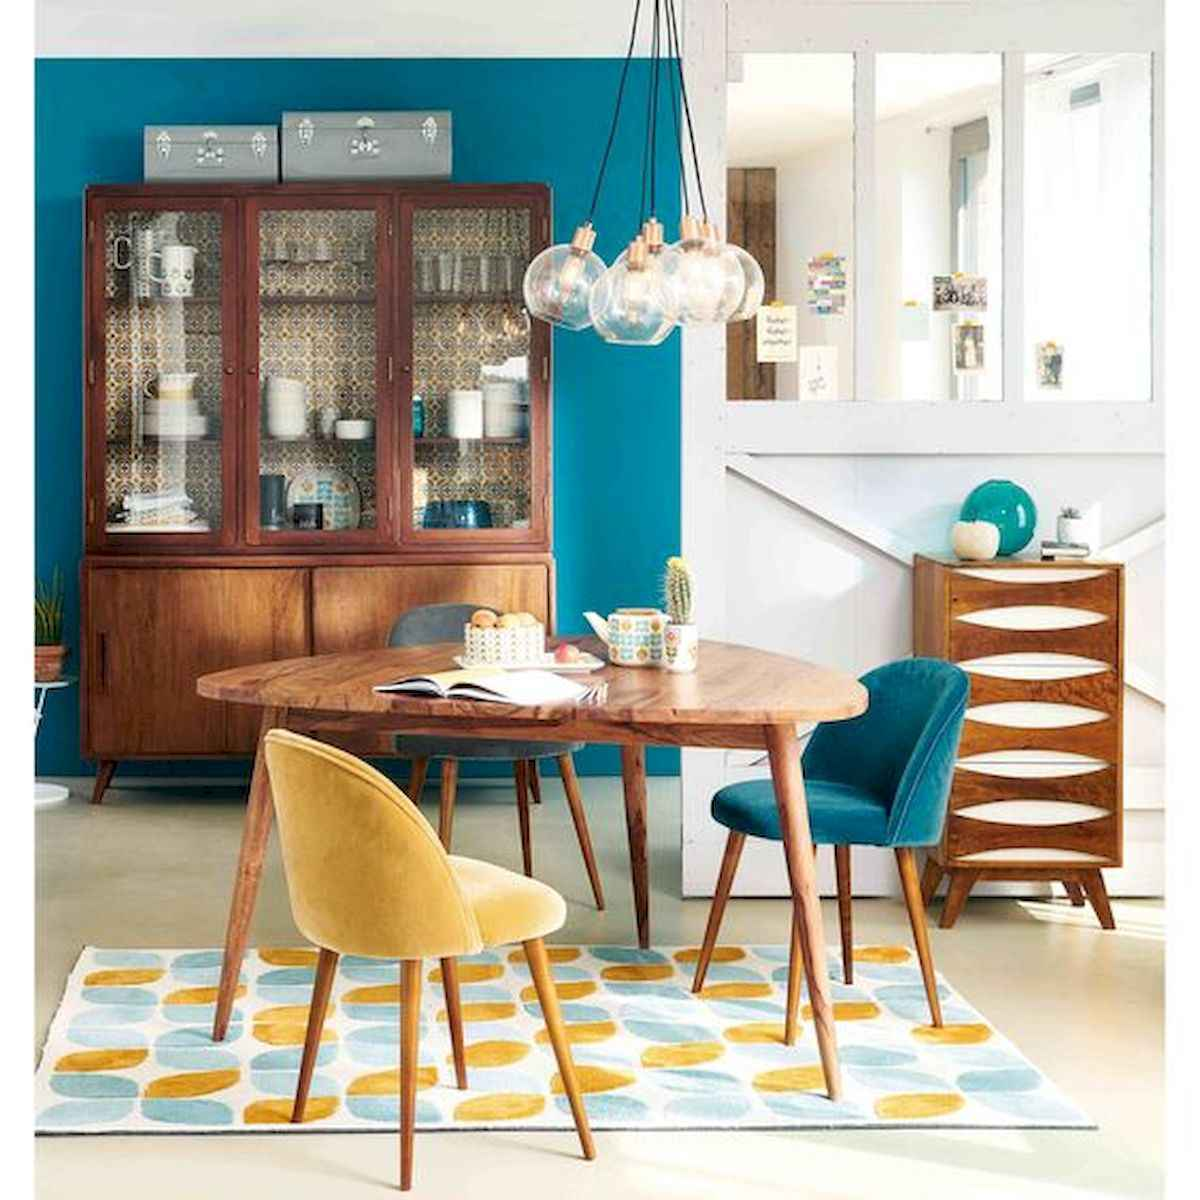 80+ Stunning Colorful Living Room Decor Ideas And Remodel for Summer Project (79)